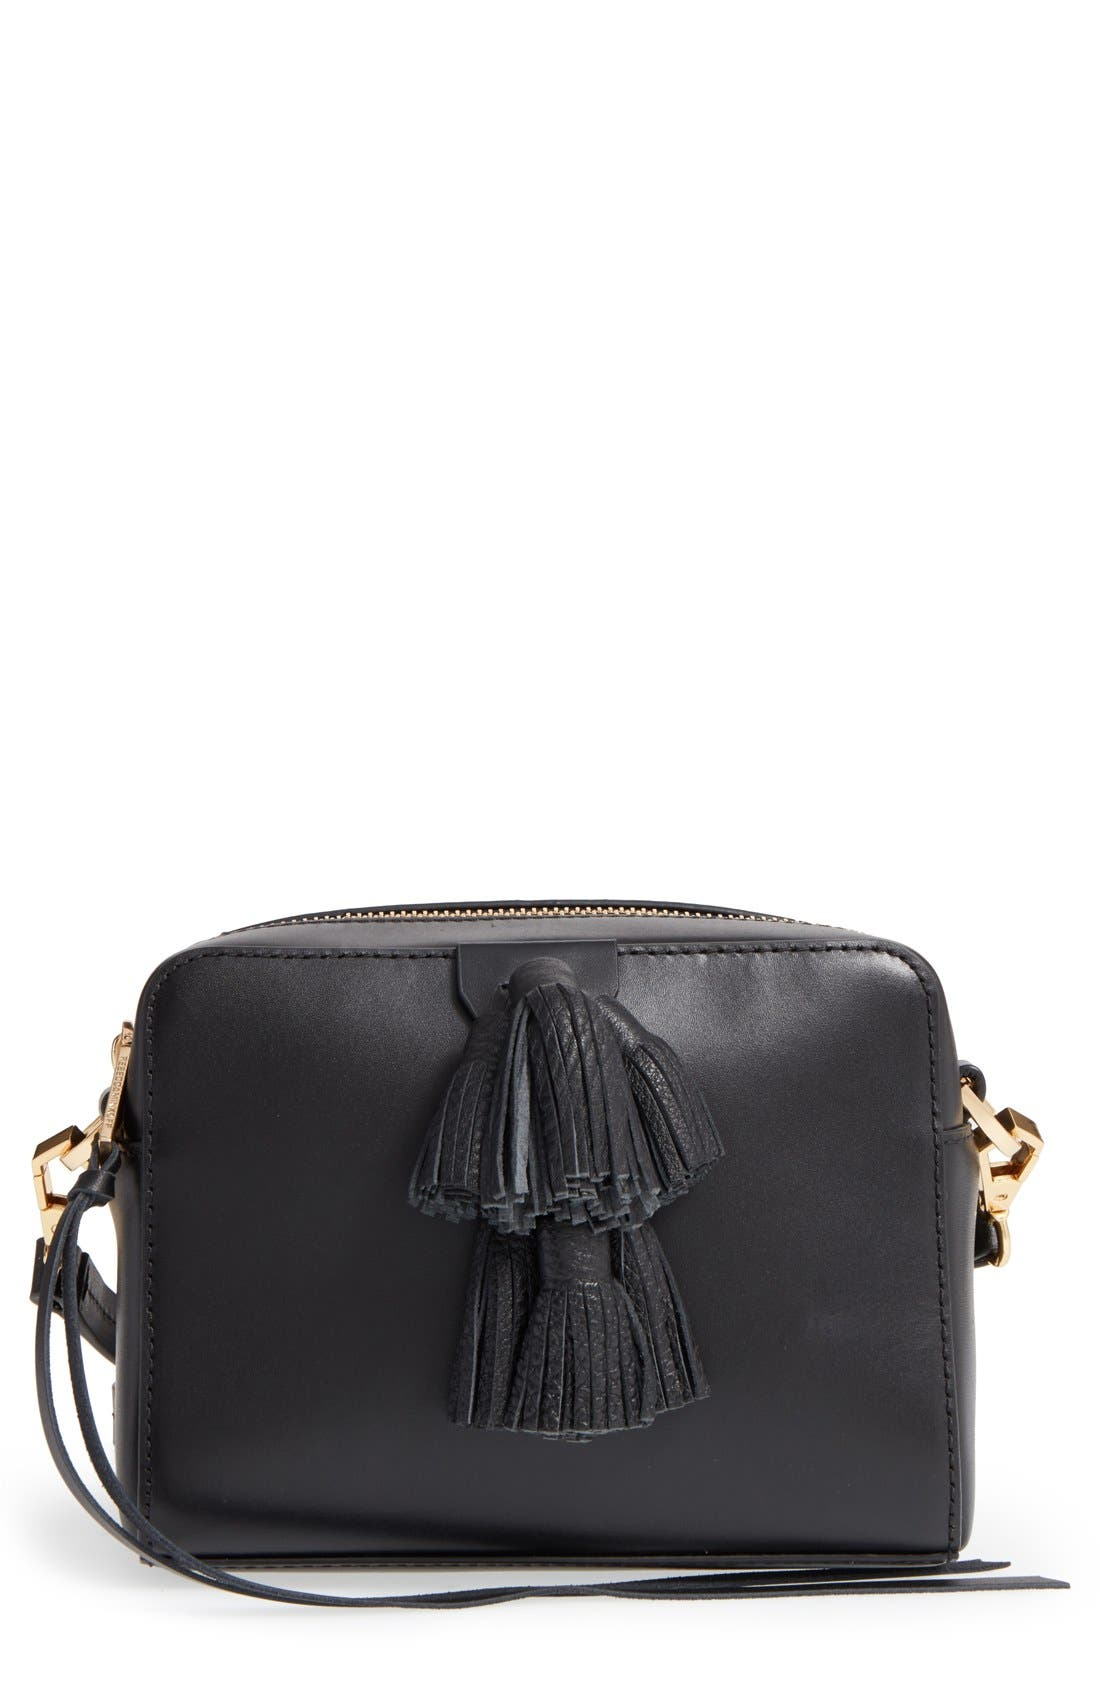 'Mini Sofia' Crossbody Bag,                             Main thumbnail 1, color,                             001